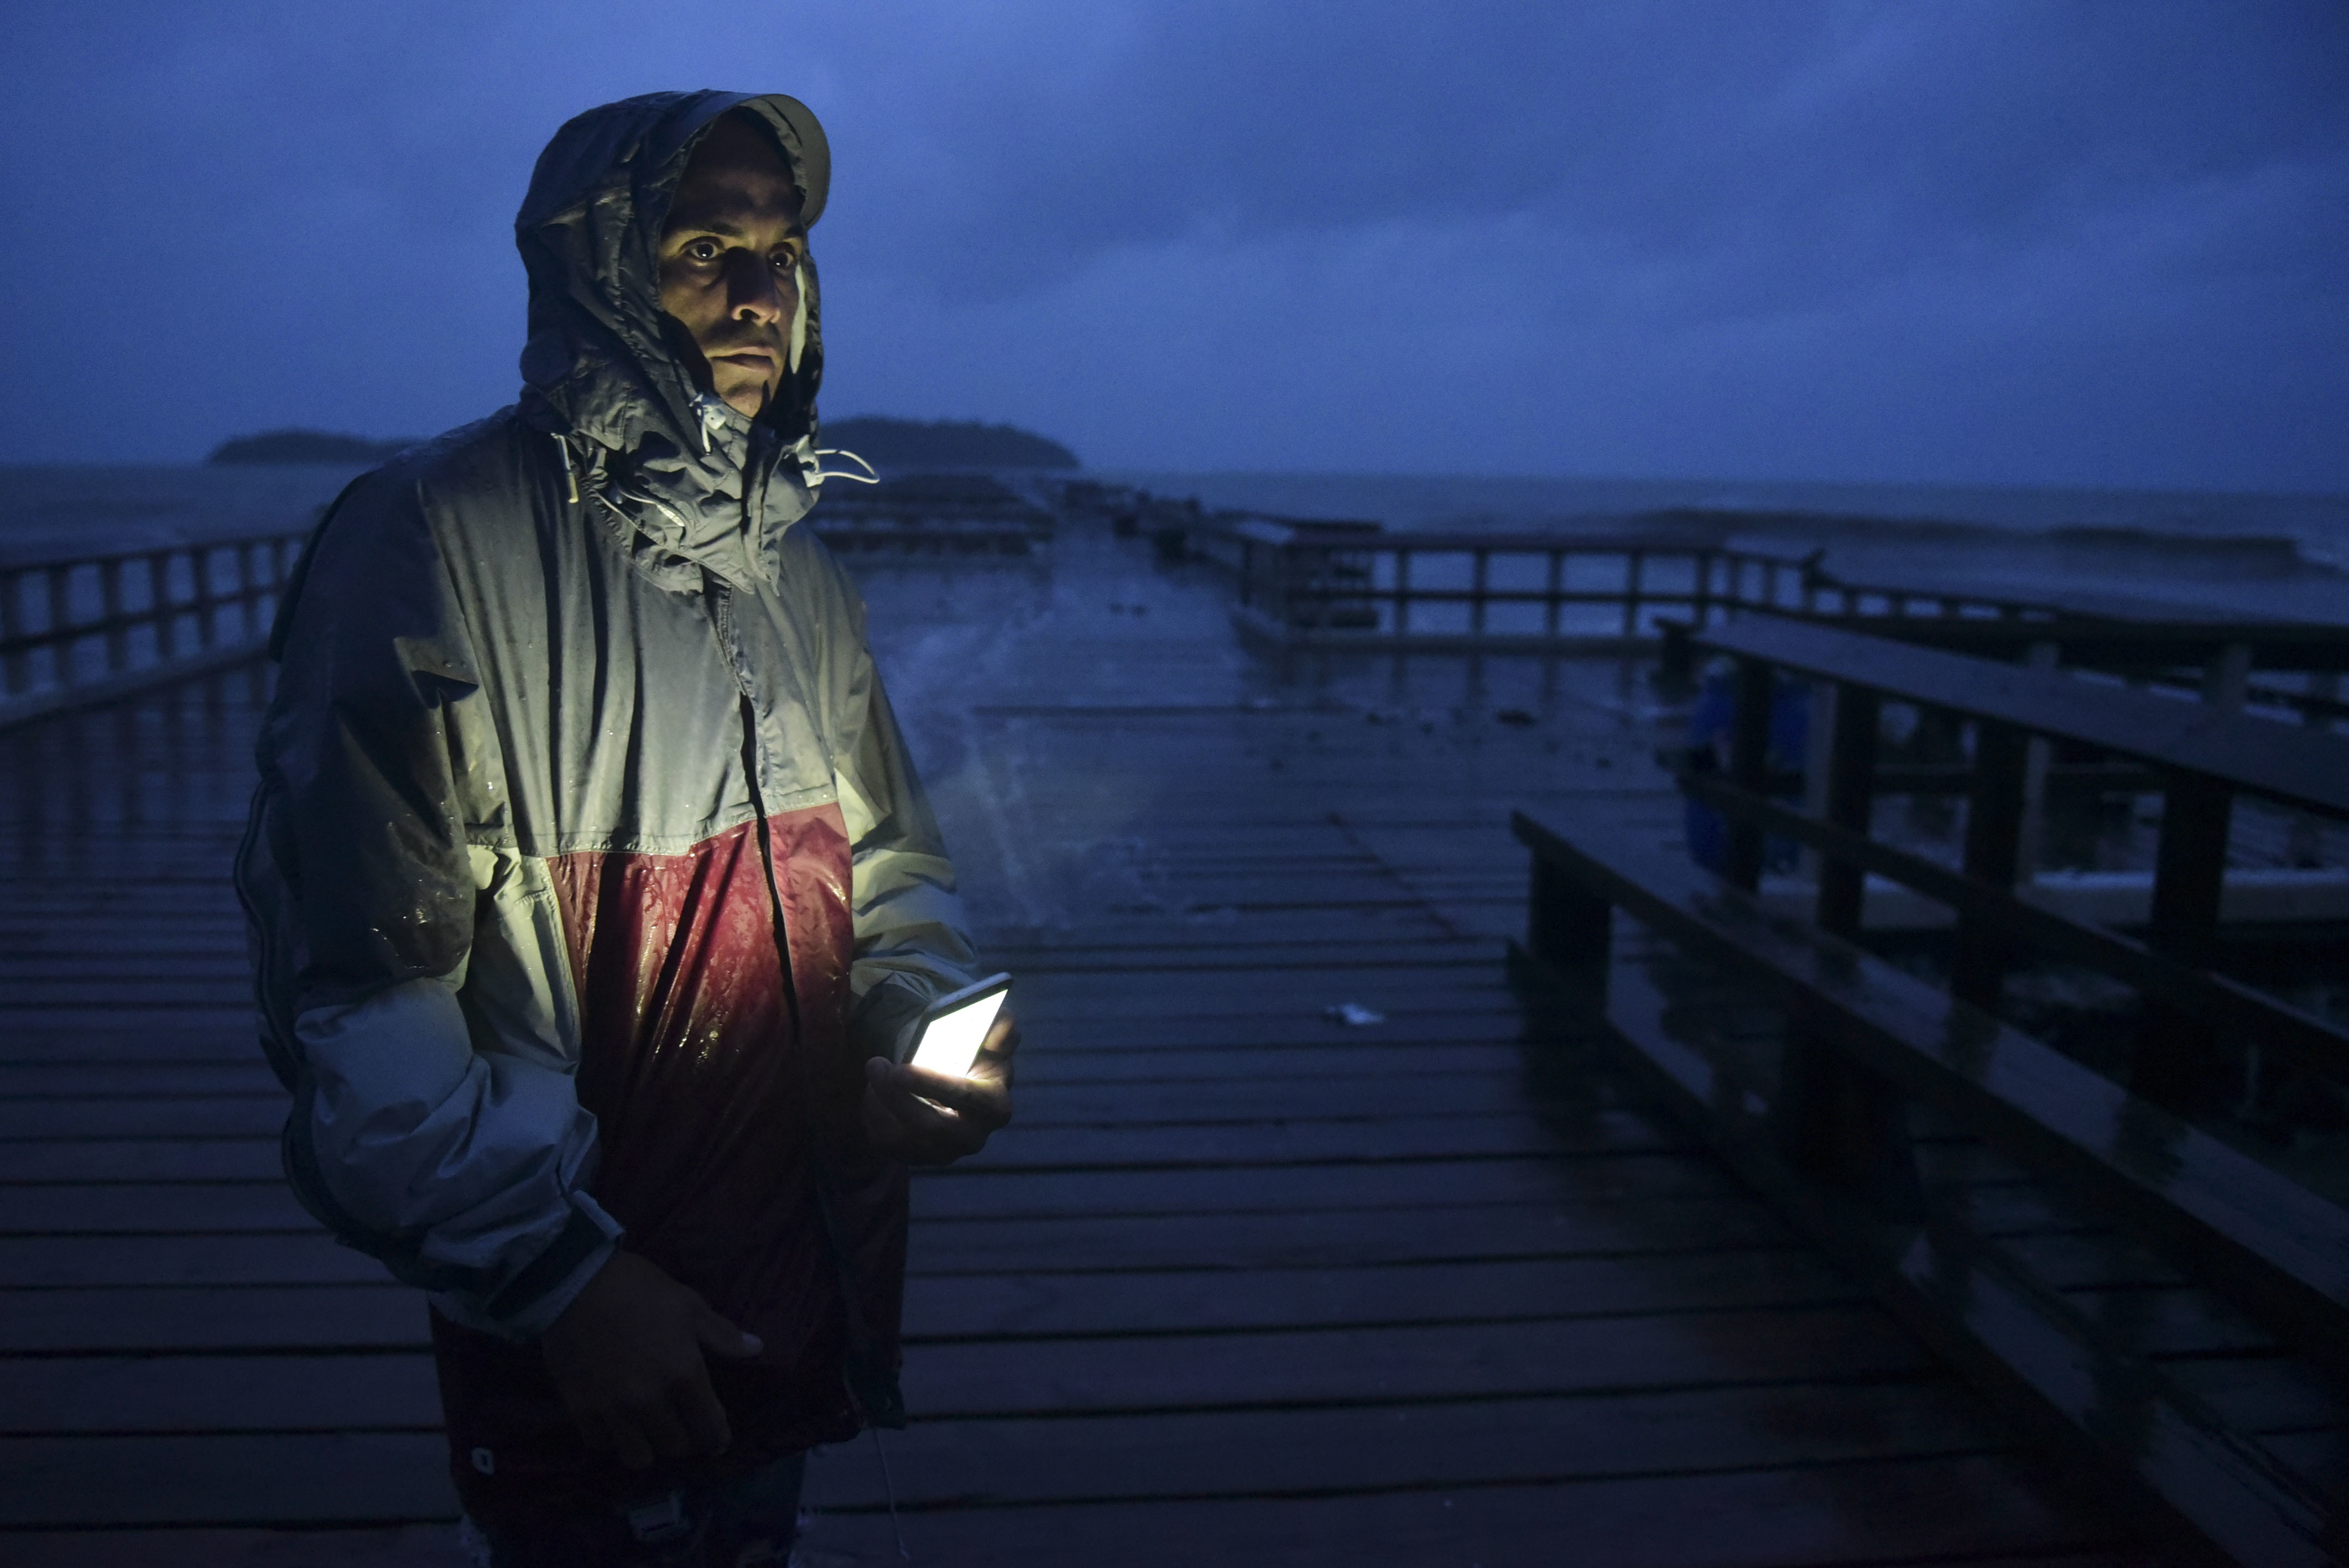 <div class='meta'><div class='origin-logo' data-origin='none'></div><span class='caption-text' data-credit='Carlos Giusti/AP Photo'>David Cruz Marrero watches the waves at Punta Santiago pier hours before the imminent impact of Maria on Tuesday, September 19, 2017.</span></div>